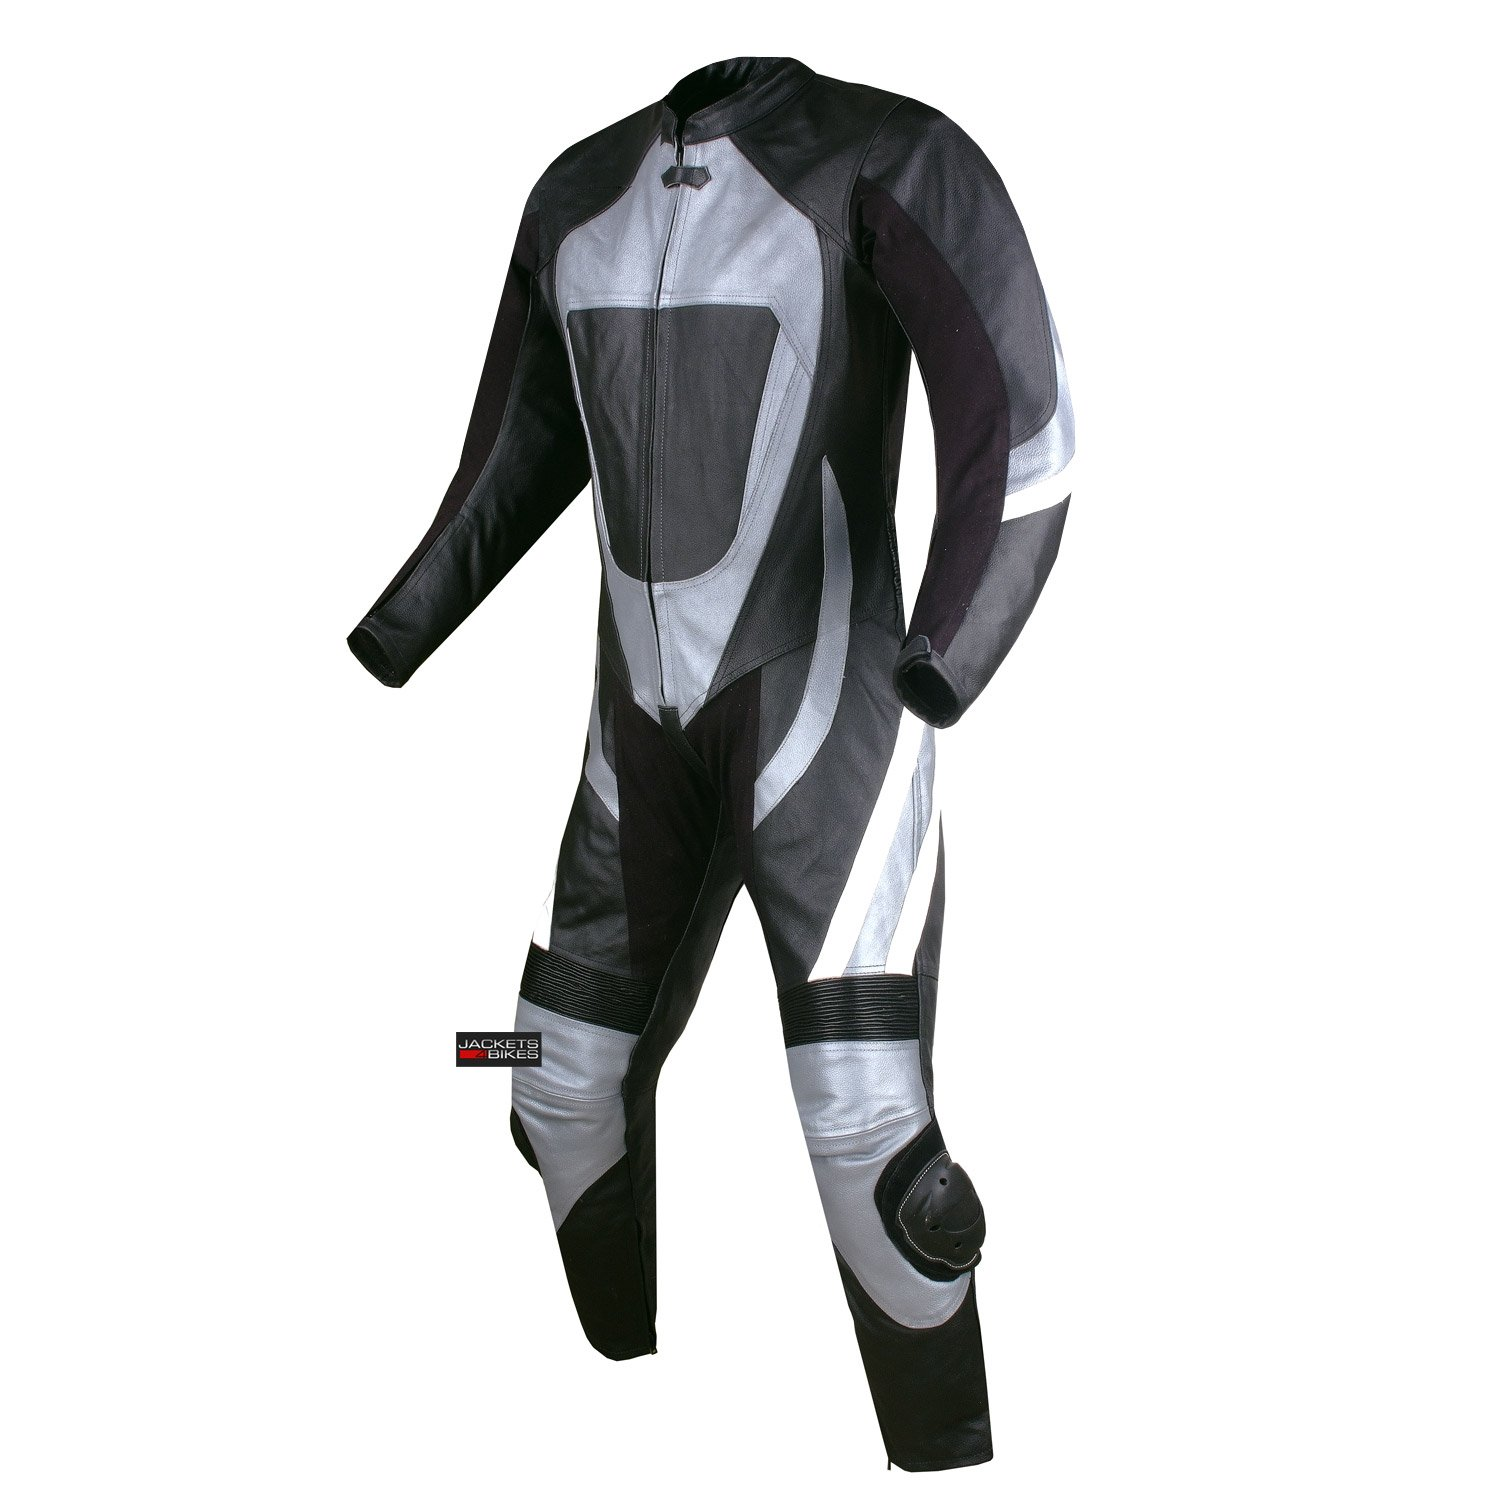 New 1PC One-Piece Armor Leather Motorcycle Racing Suit Silver w/Hump US Size 40 by Jackets 4 Bikes (Image #2)